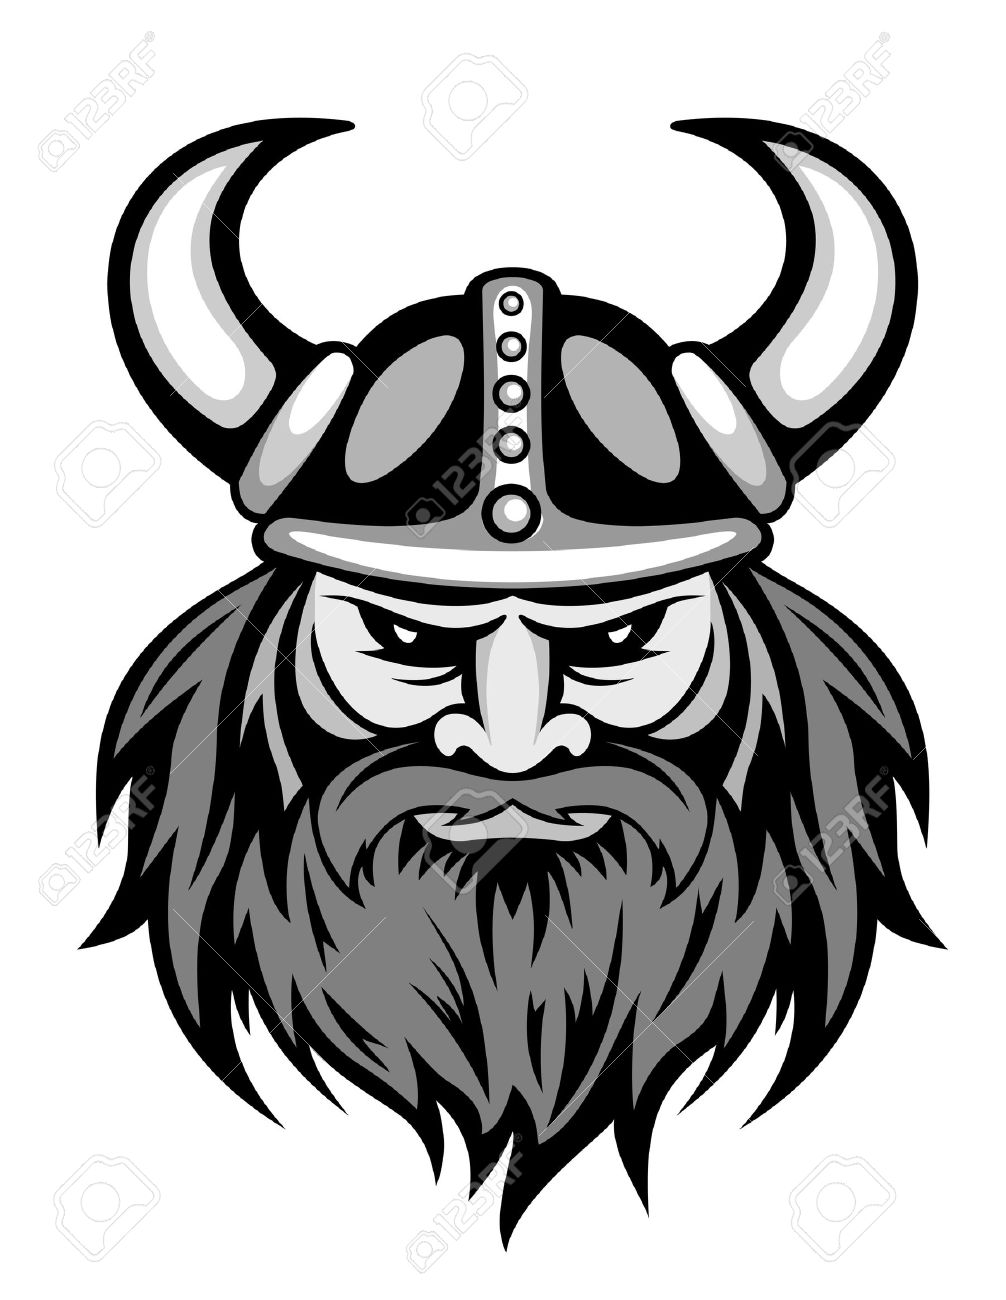 hight resolution of 1006x1300 viking clipart black and white